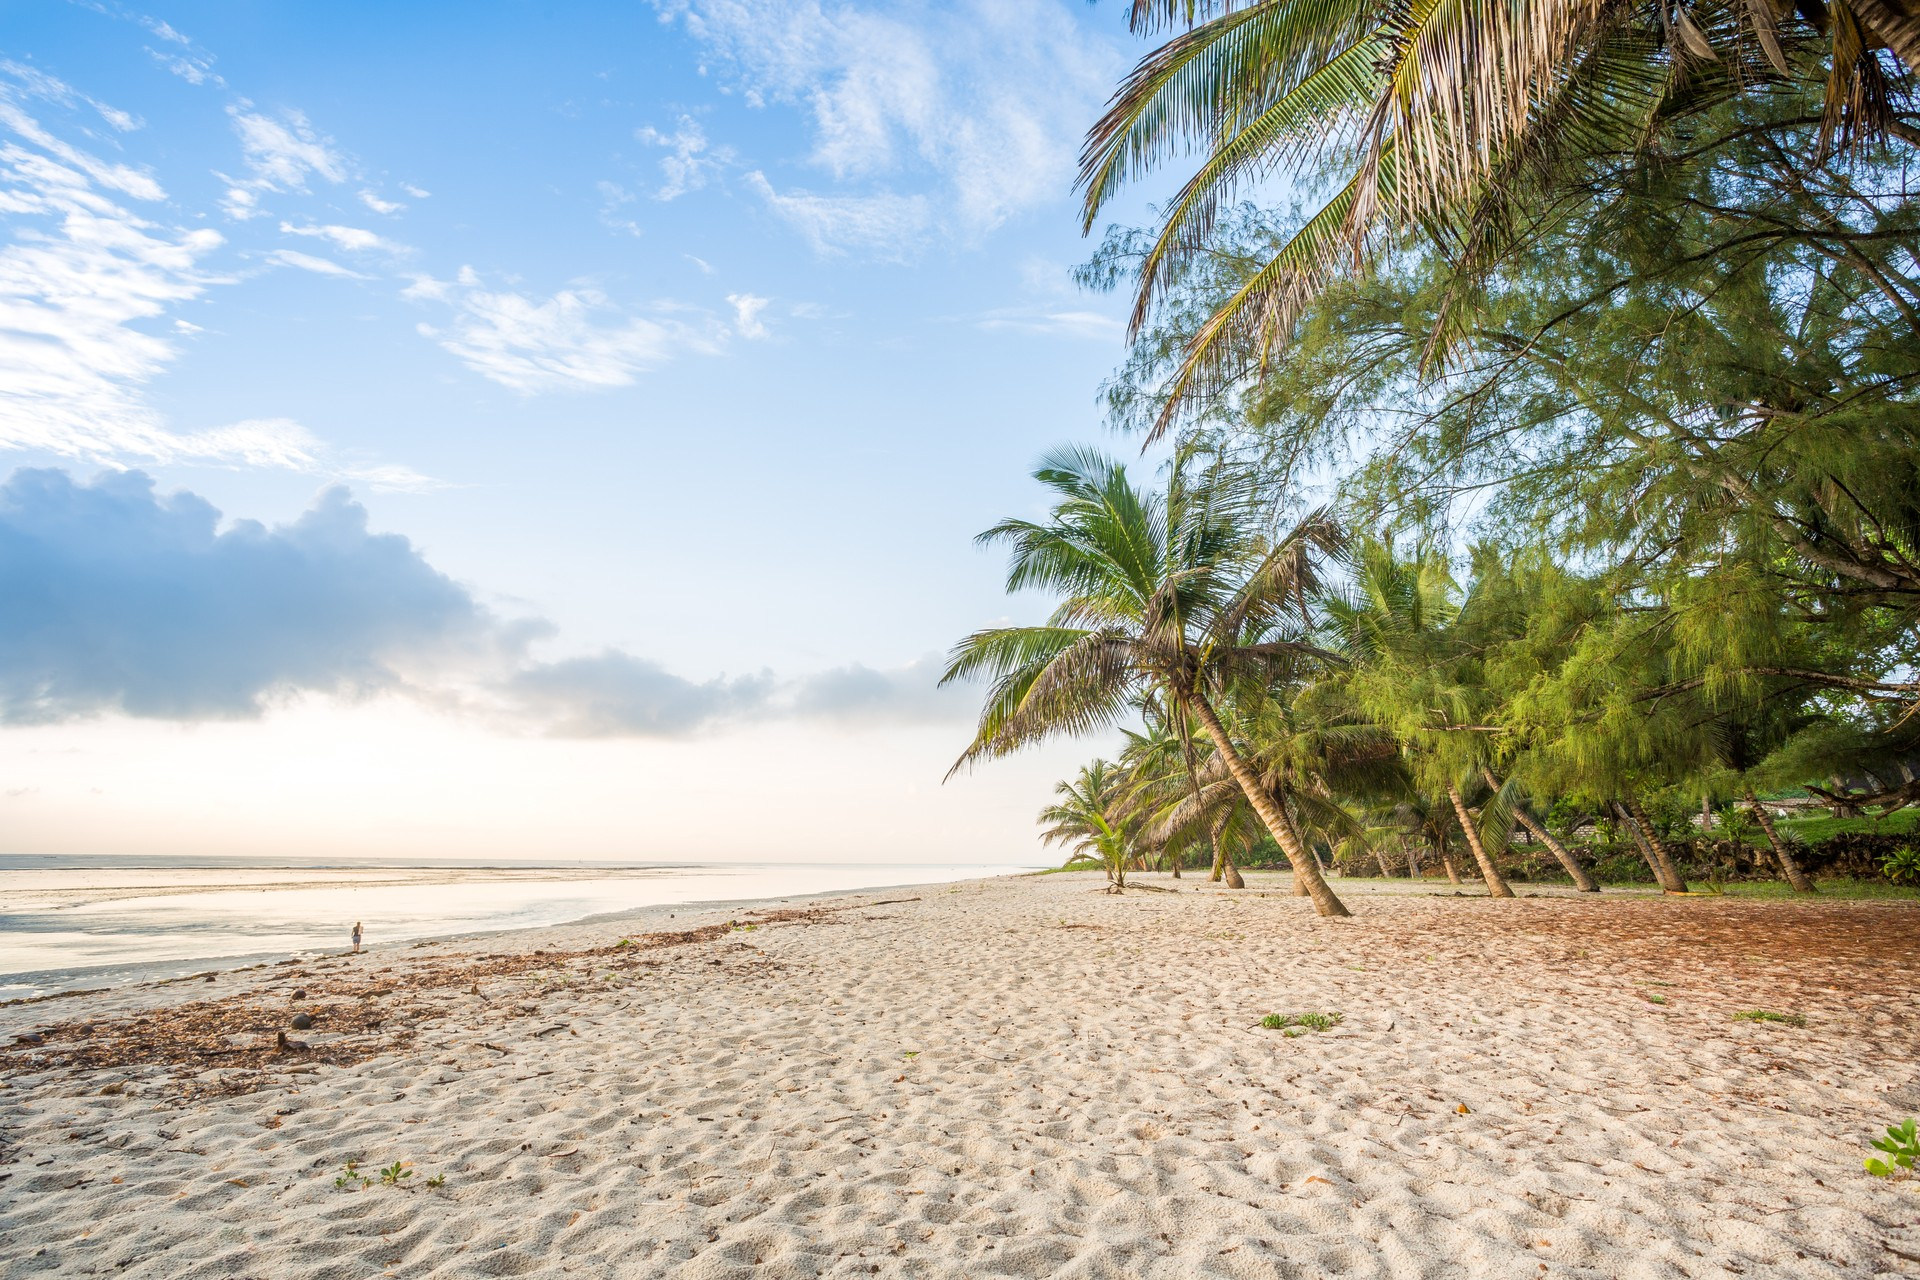 Diani Beach is situated 30 km south of Mombasa in Kenya